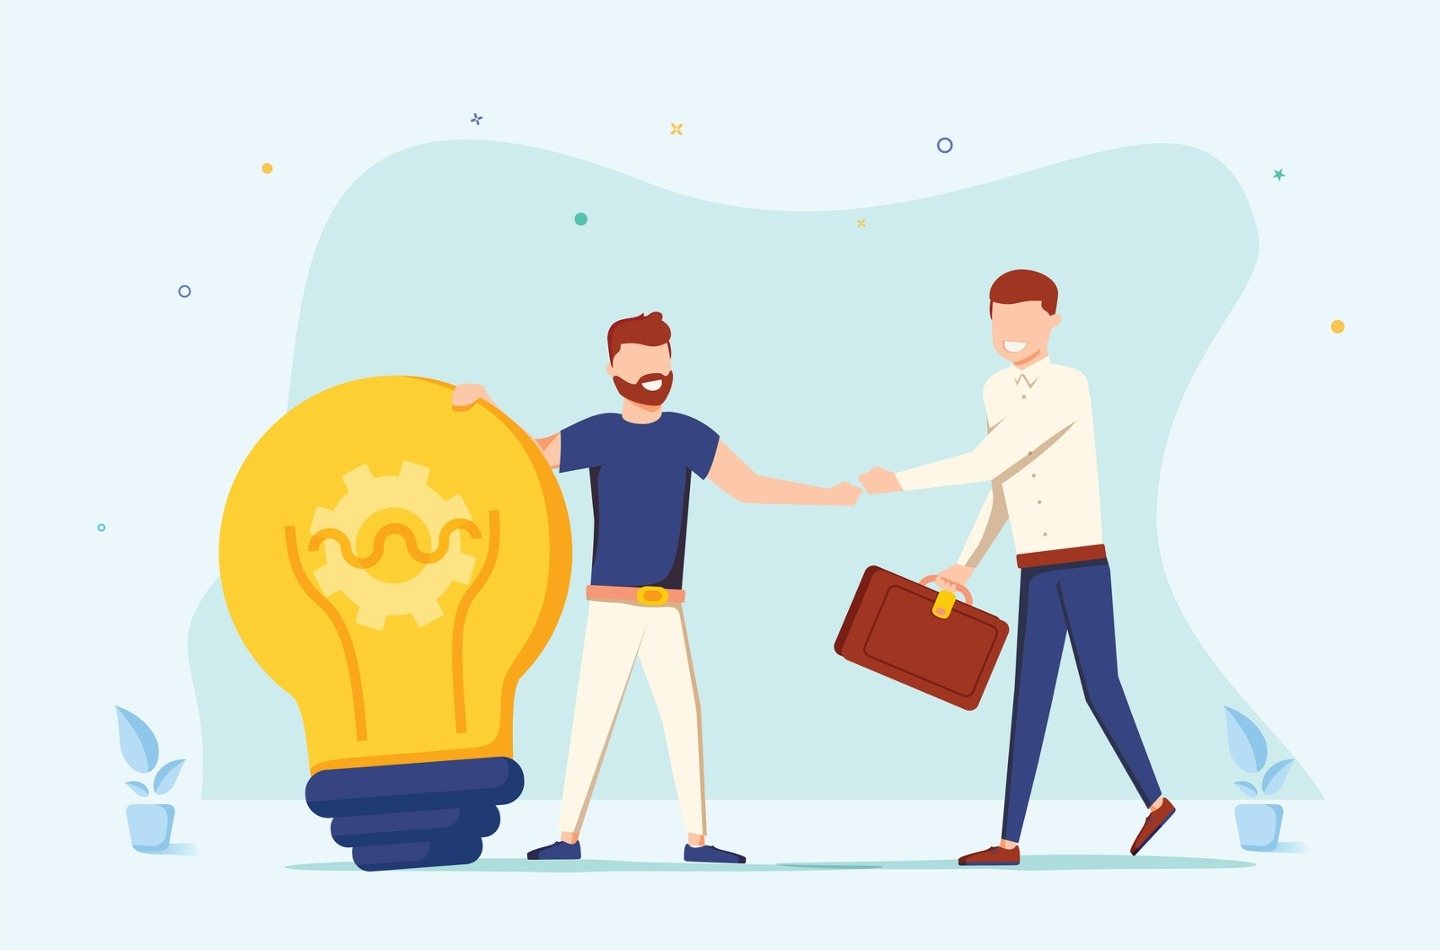 The pros and cons of venture capital. It is funding provided to startups or entrepreneurs, usually by individuals or small groups of investors.